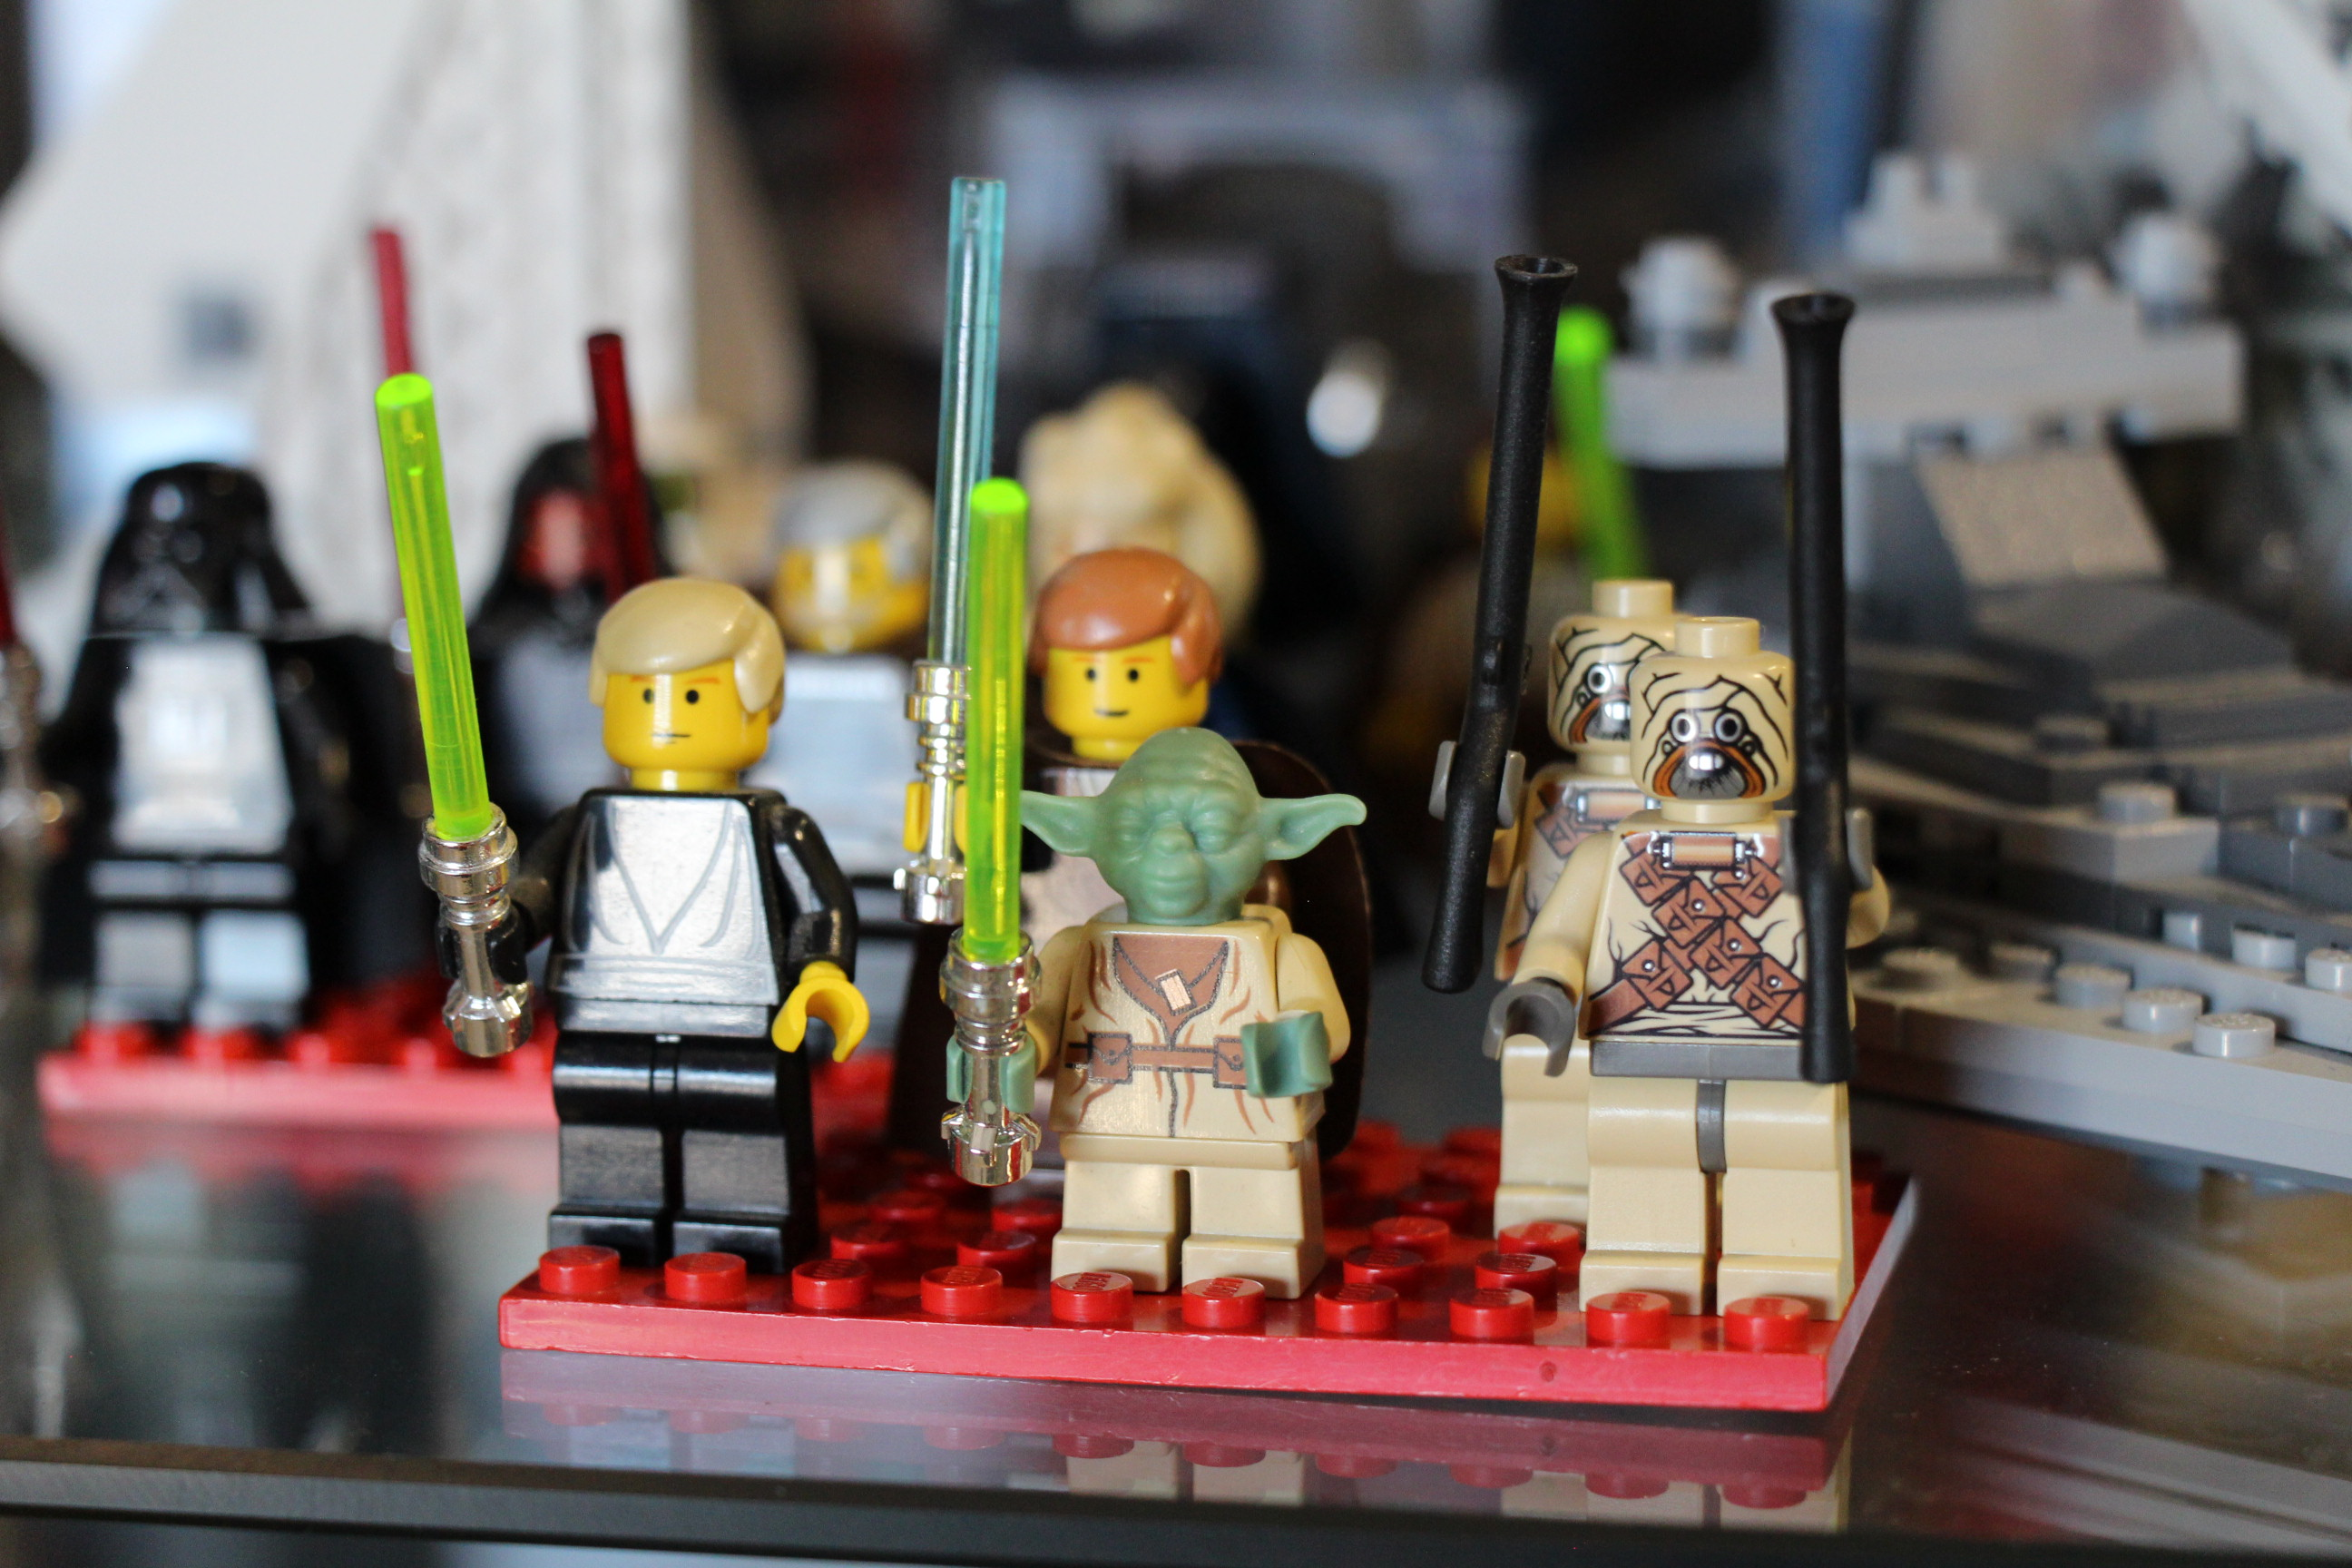 Lego Star Wars Vintage Toy Store